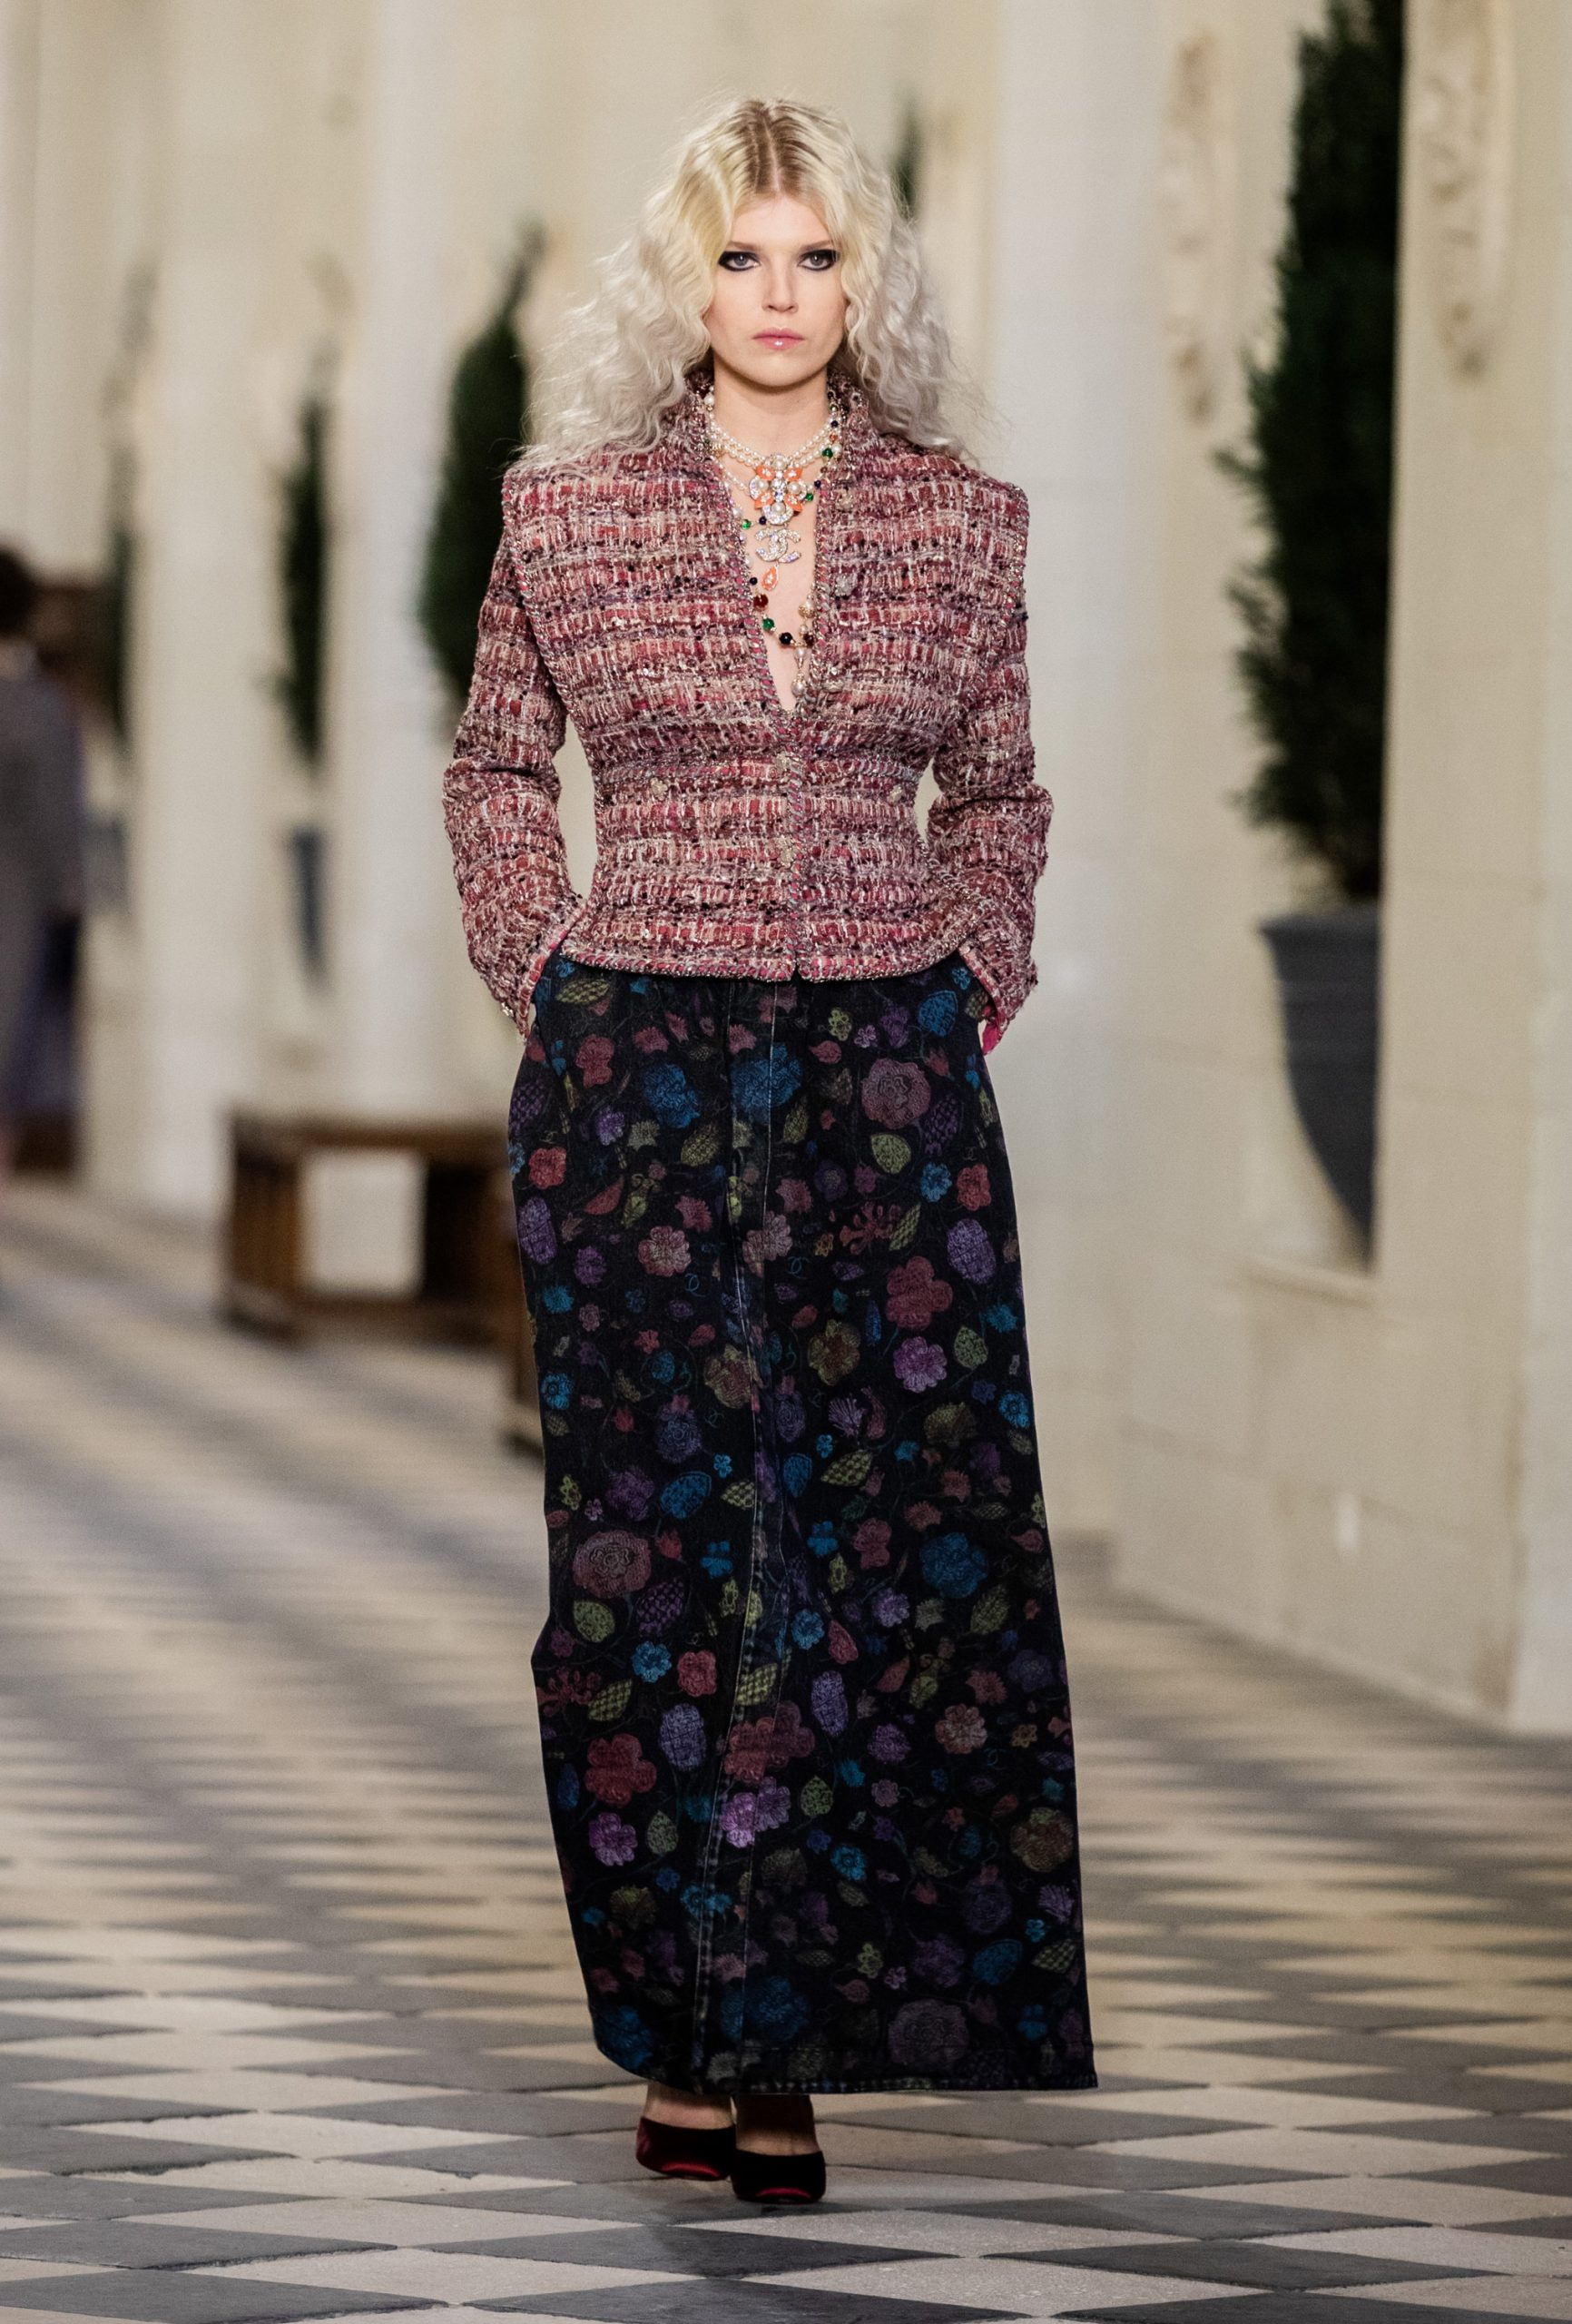 Chanel Métiers d'art 2020/21 Fashion Show Review